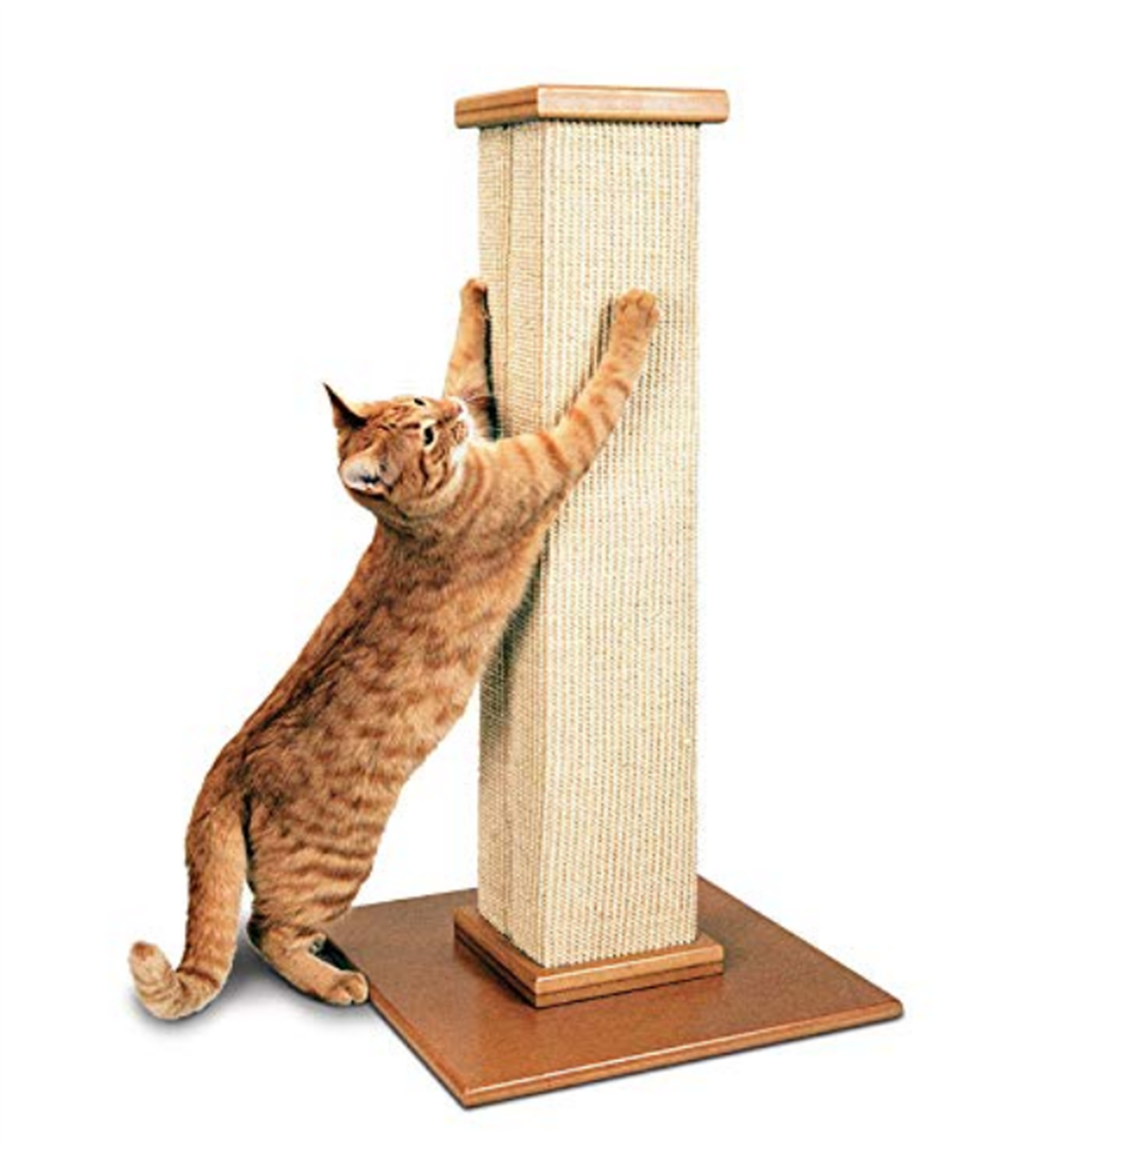 Amazon – SmartCat Pioneer Pet Ultimate Scratching Post Only $34.99, Reg. $49.99 + Free Shipping!